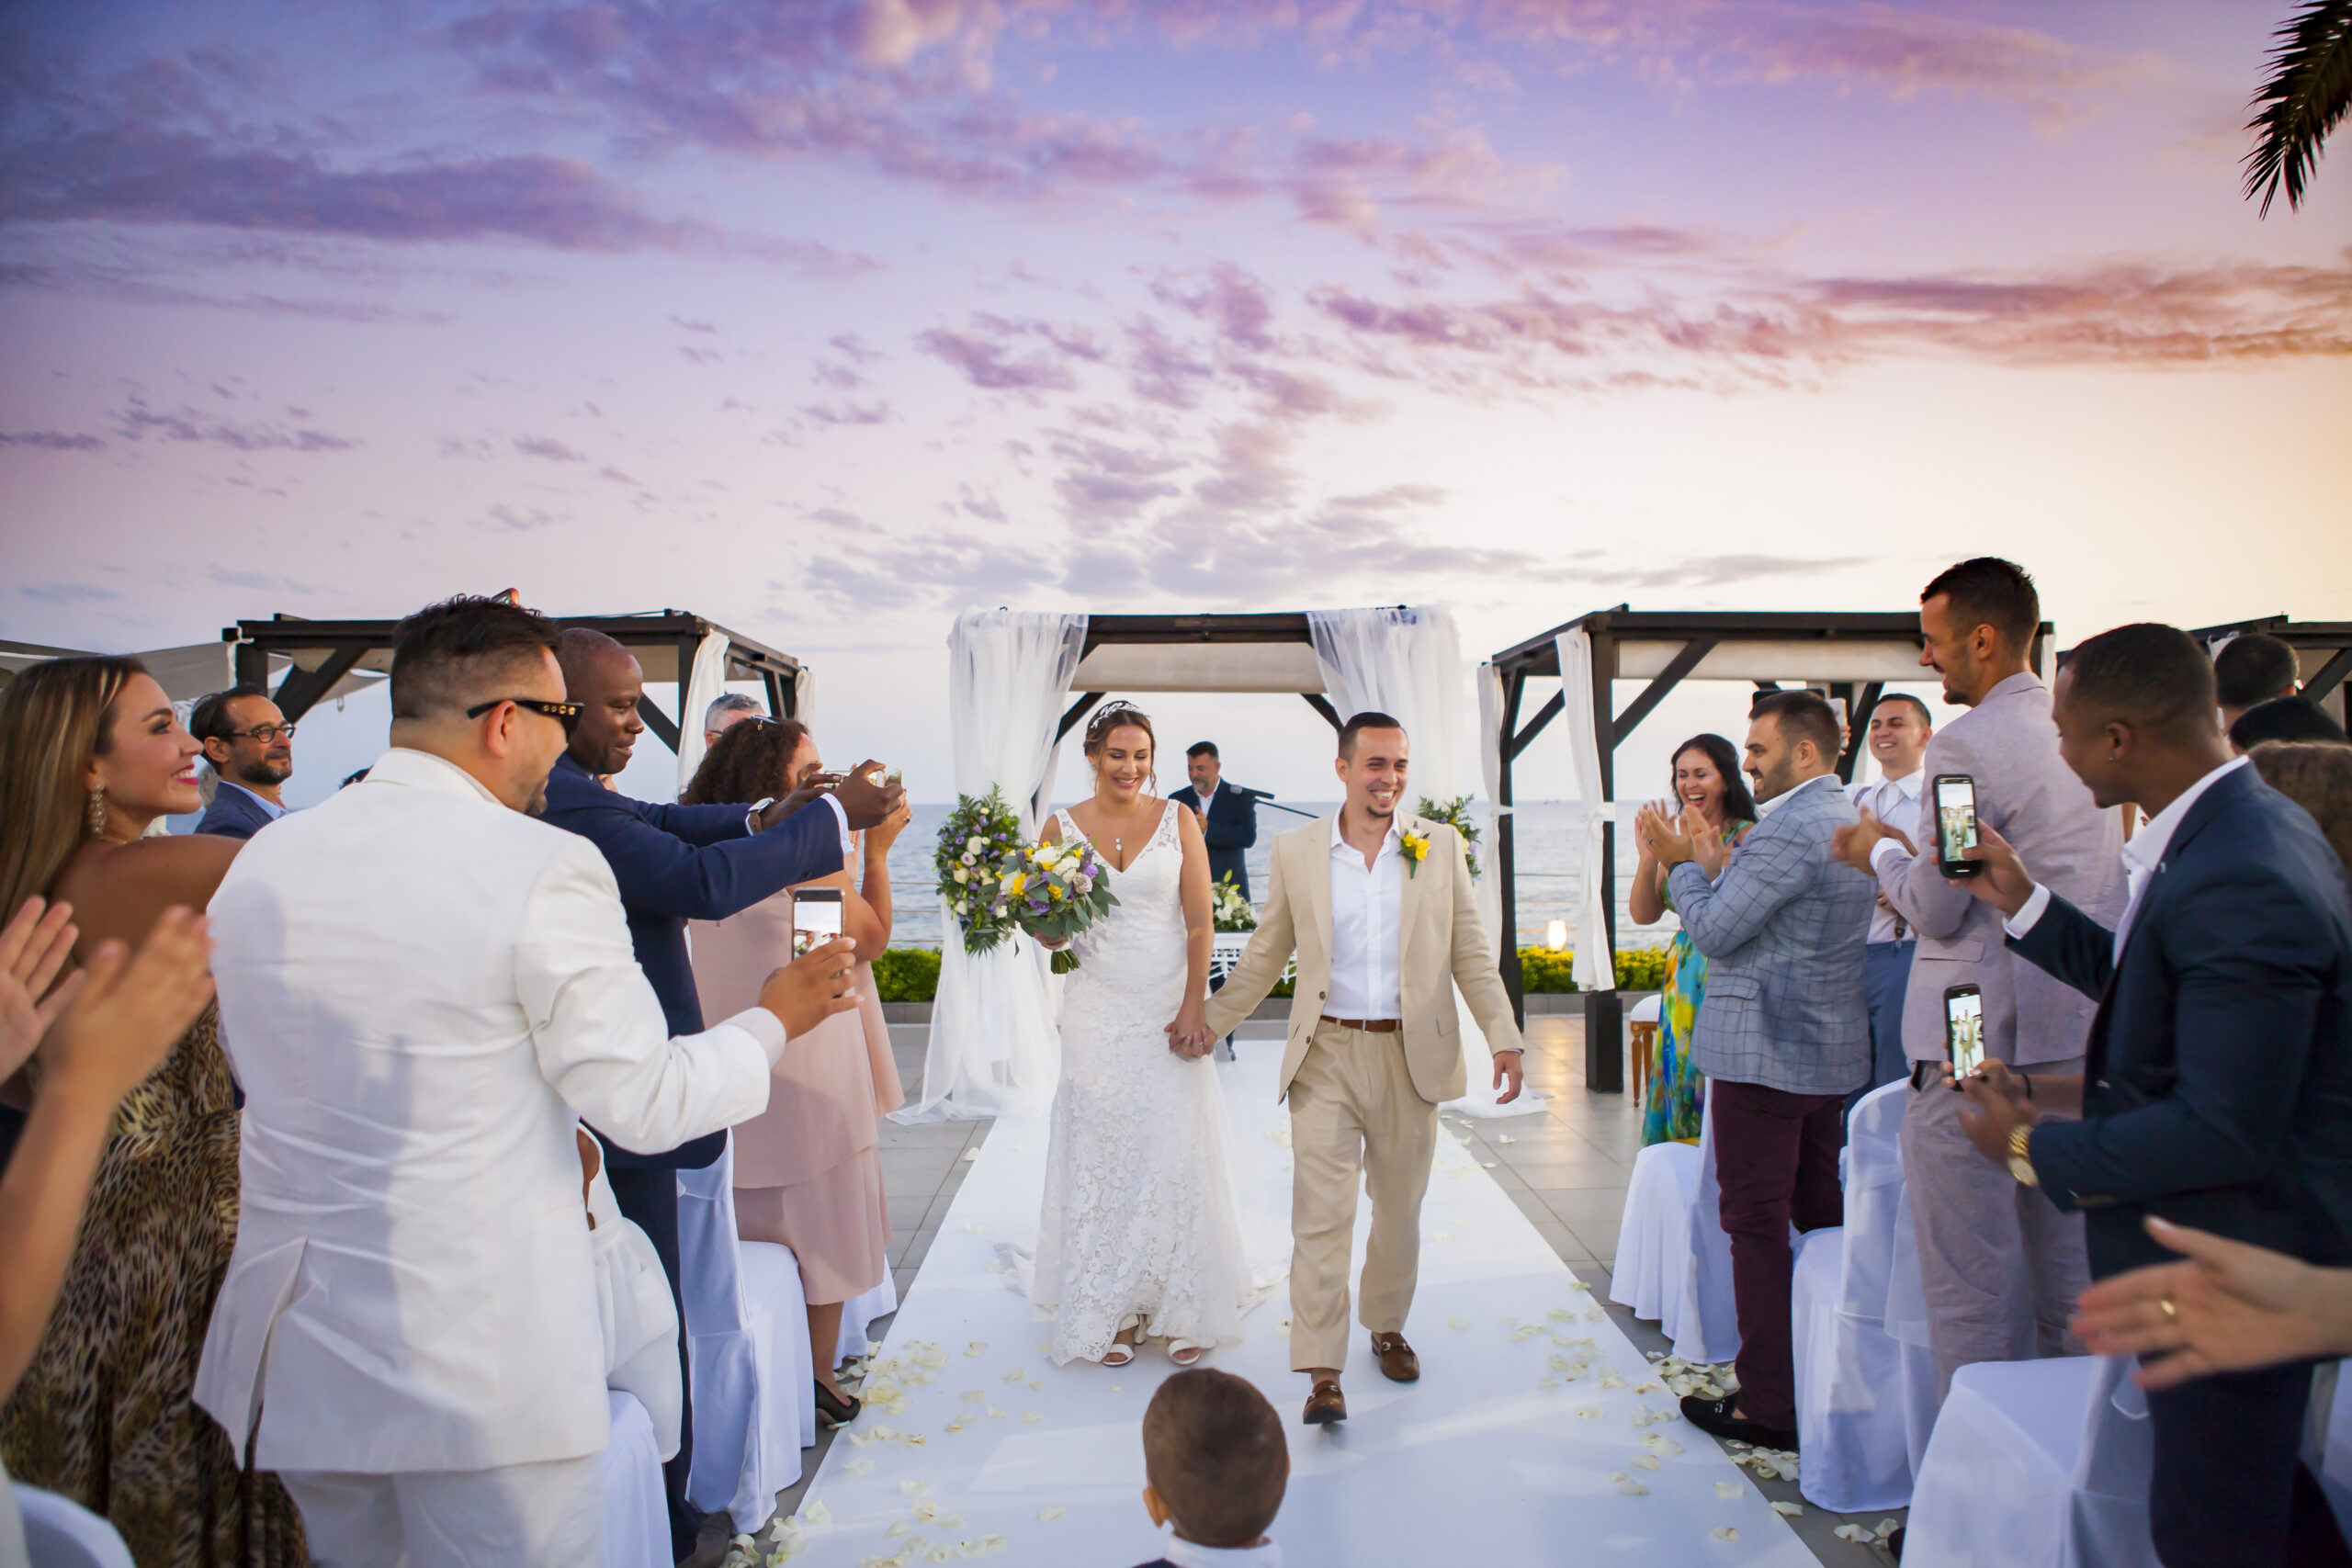 The bride and groom walking back down the aisle to the delight of their family and friends after the beach club ceremony